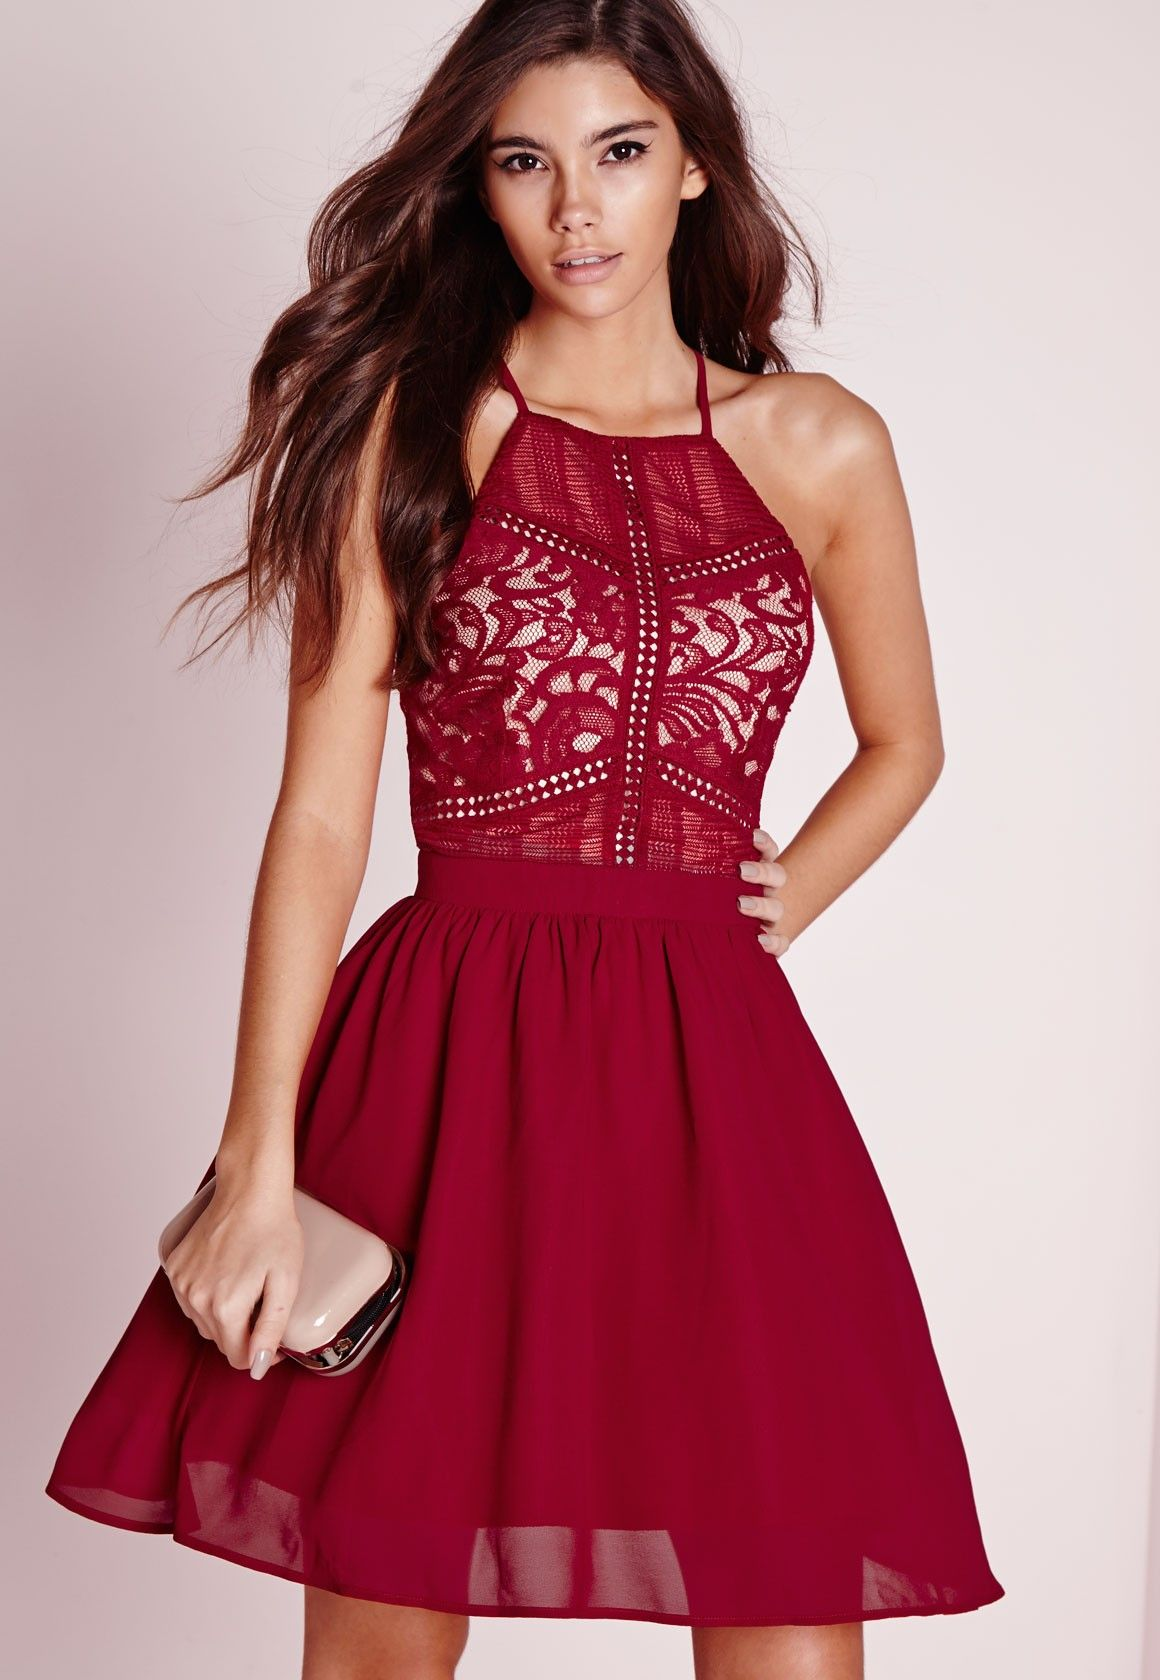 5a77befd057a2 Missguided - Lace Square Neck Skater Dress Burgundy | Clothes ...